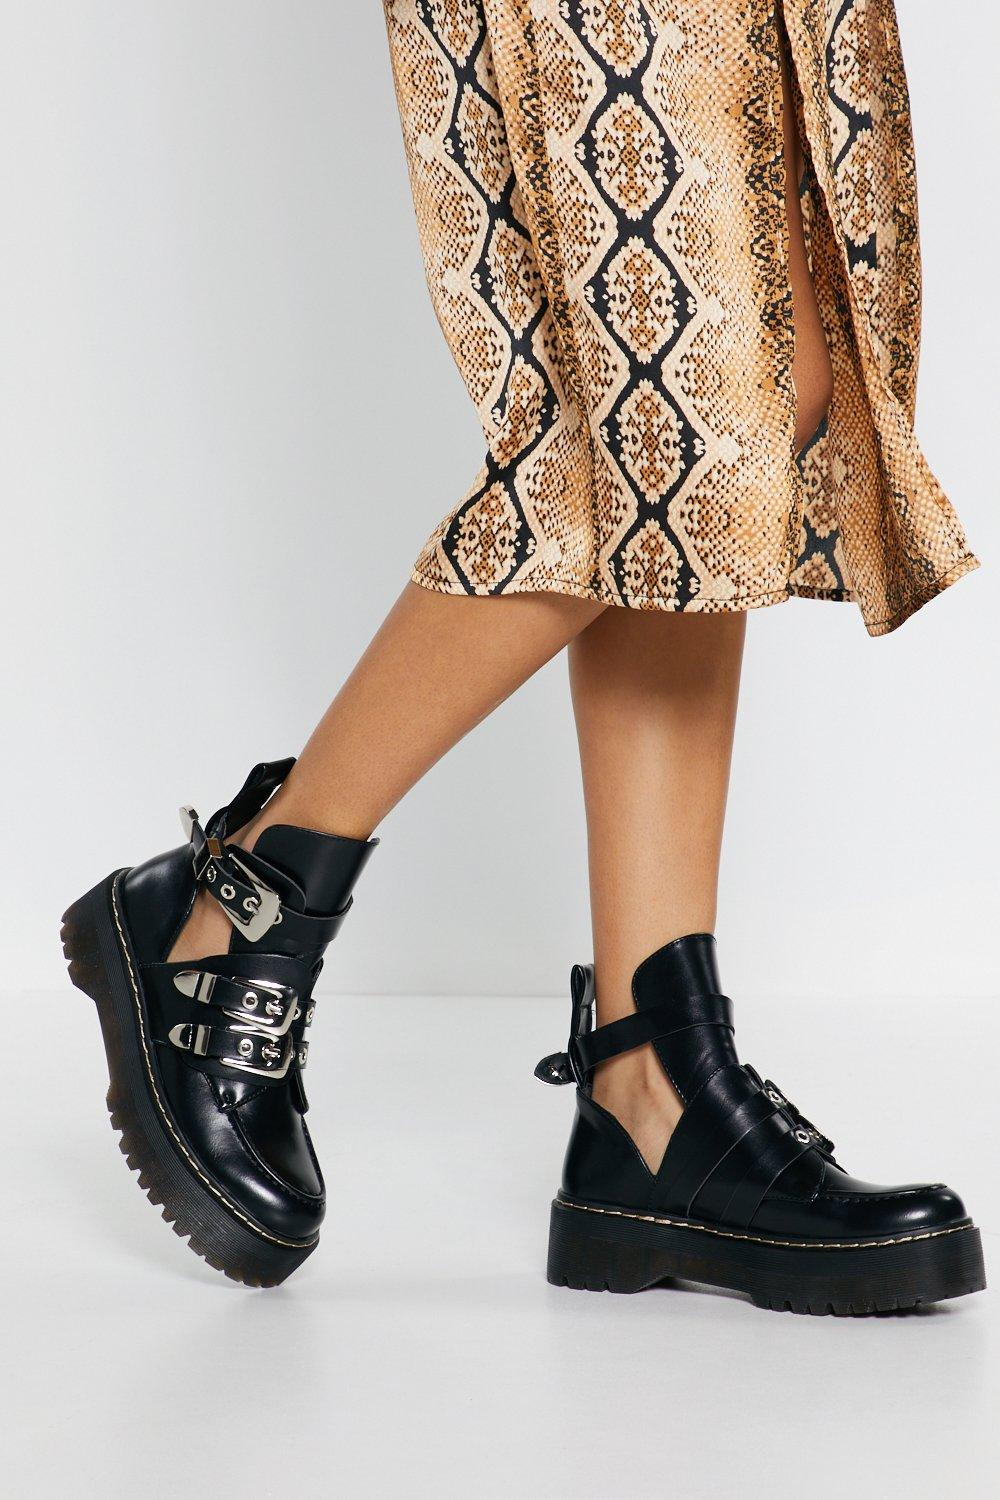 8eda706dd129e Flatform Cut Out Ankle Boots | Shop Clothes at Nasty Gal!